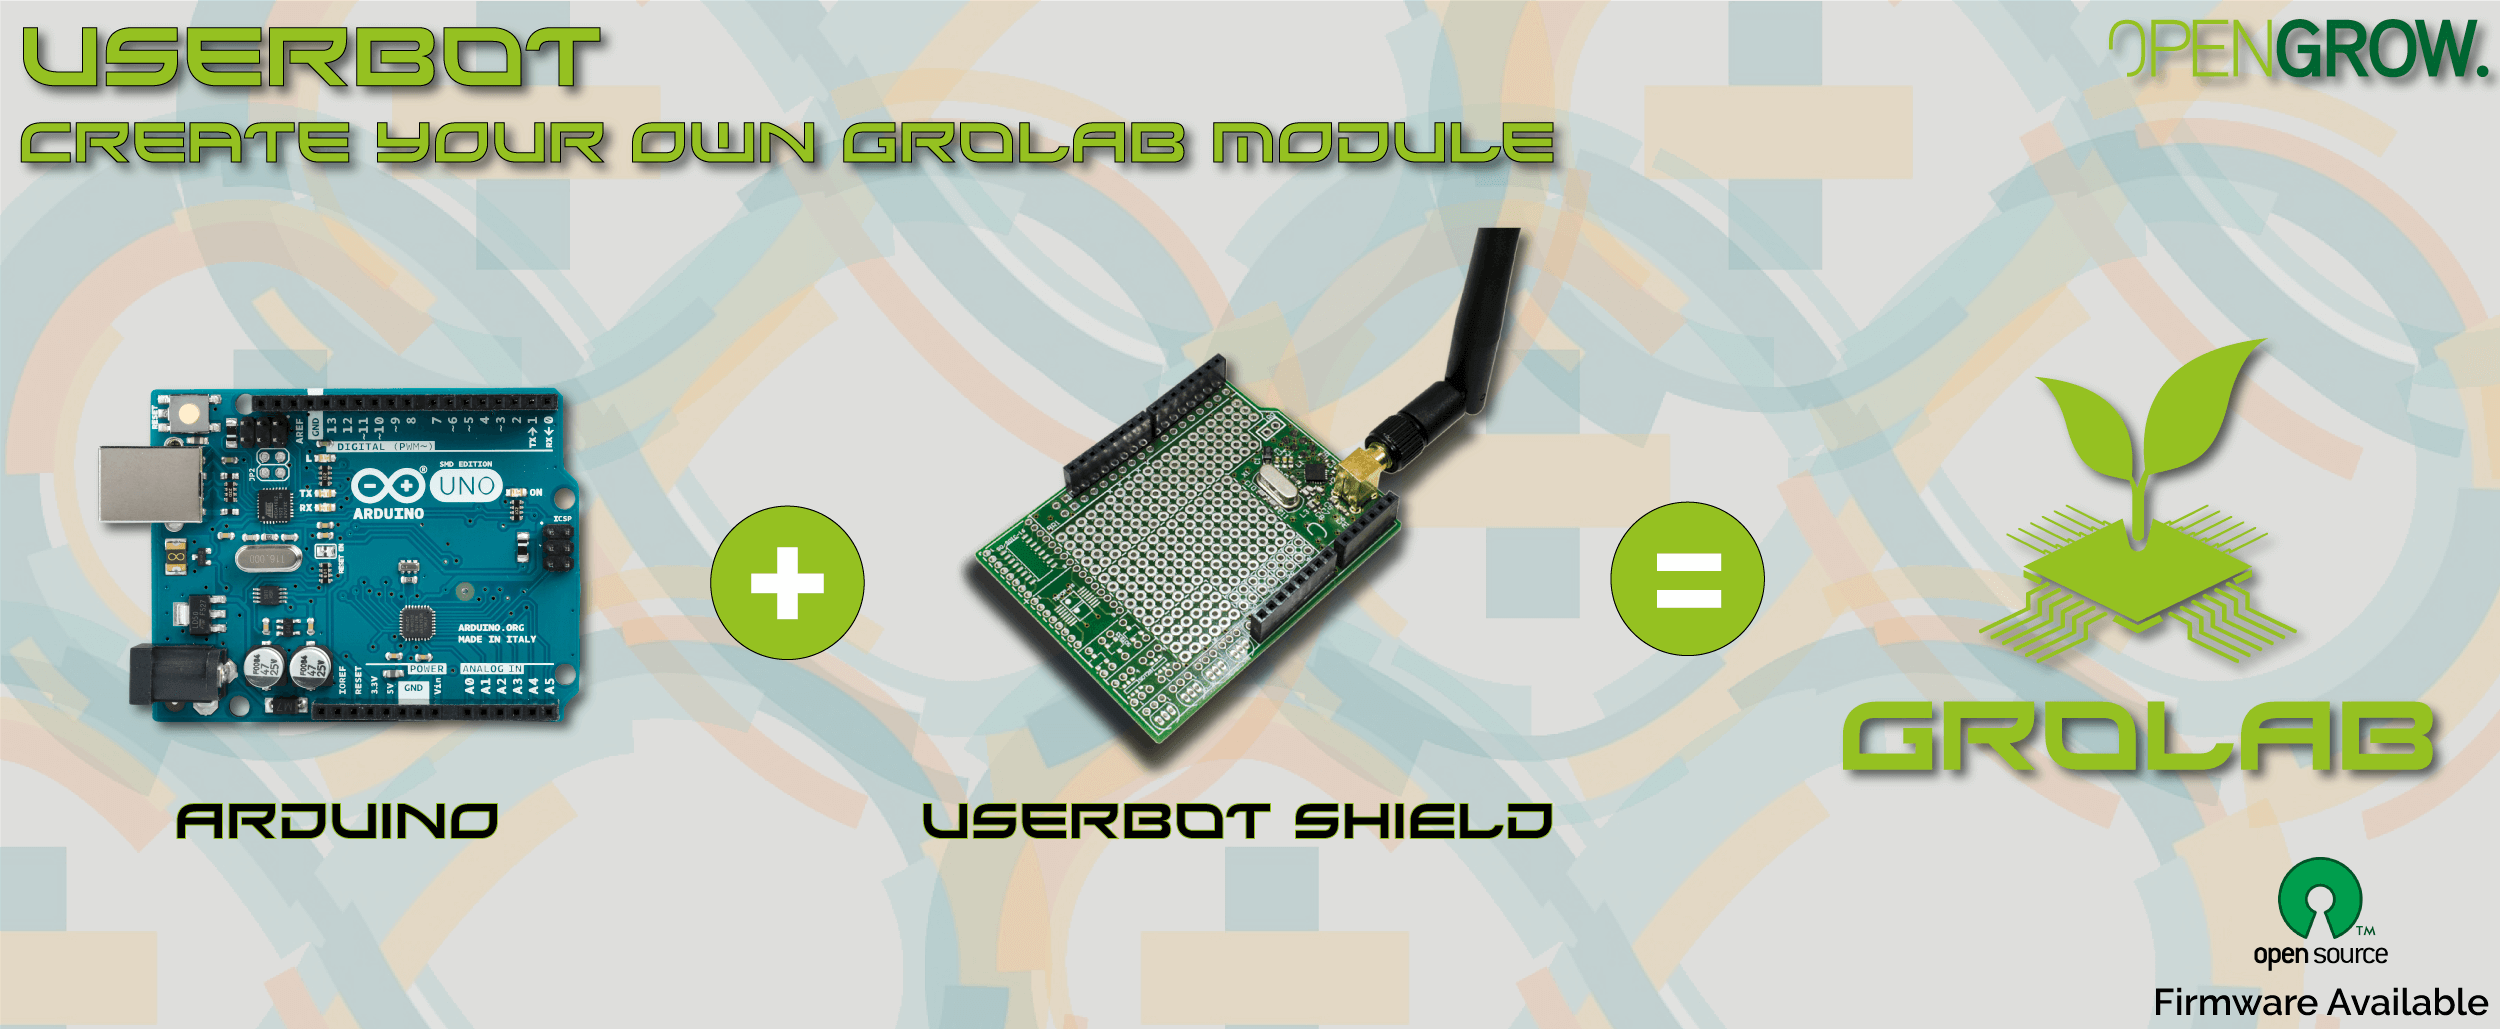 Creat your own GroLab module using our grow controller UserBot